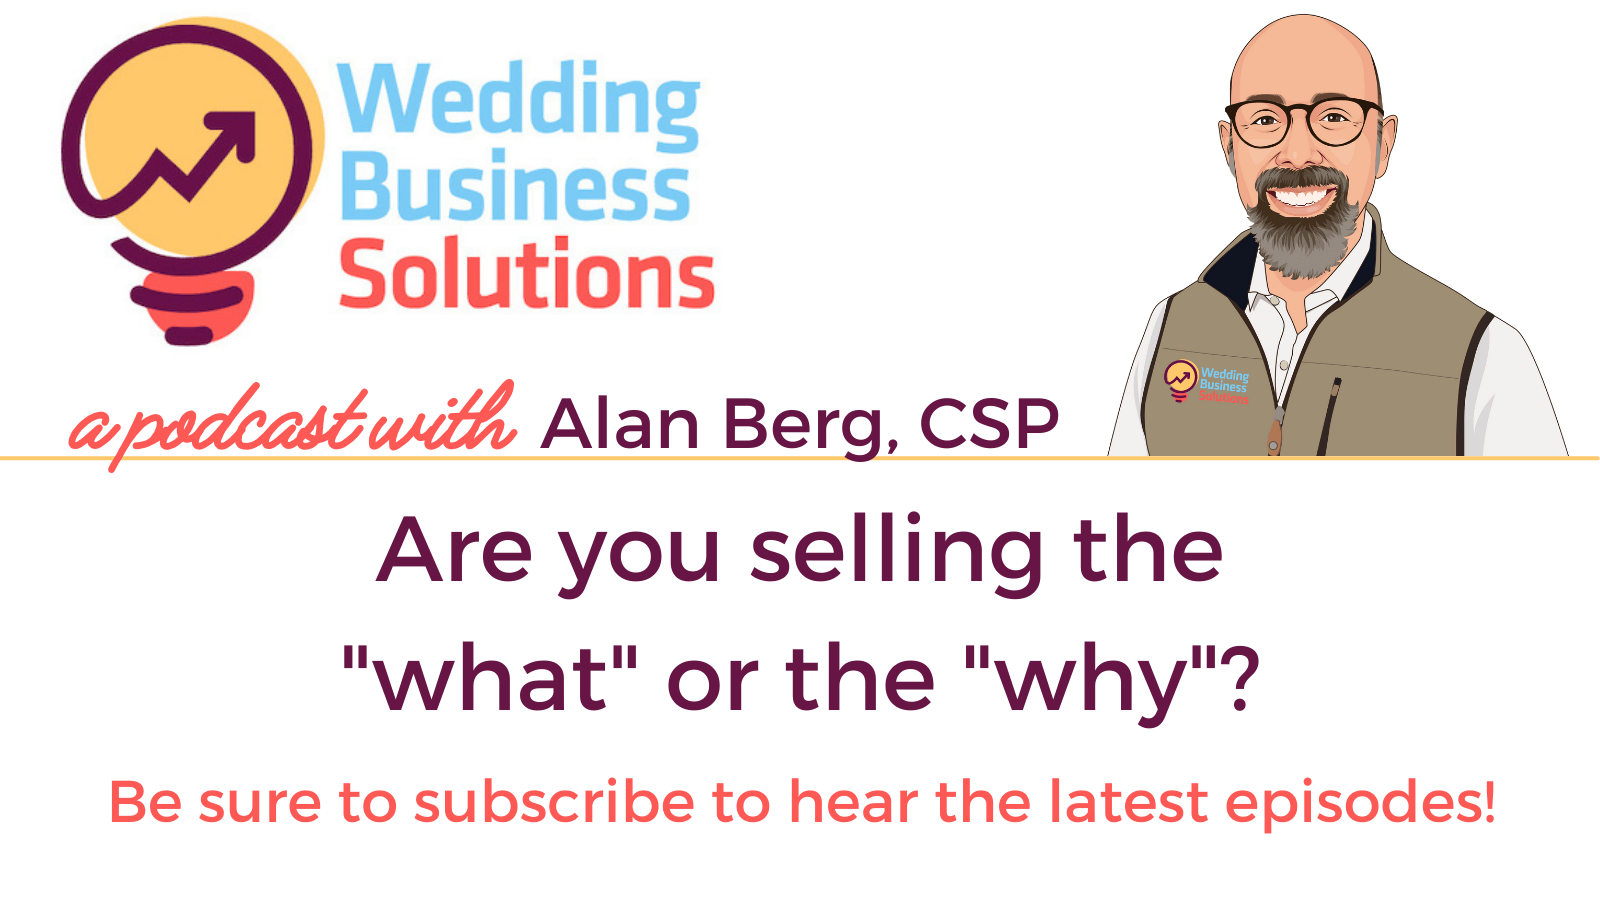 Wedding Business Solutions Podcast with Alan Berg CSP - Are you selling the what or the why?